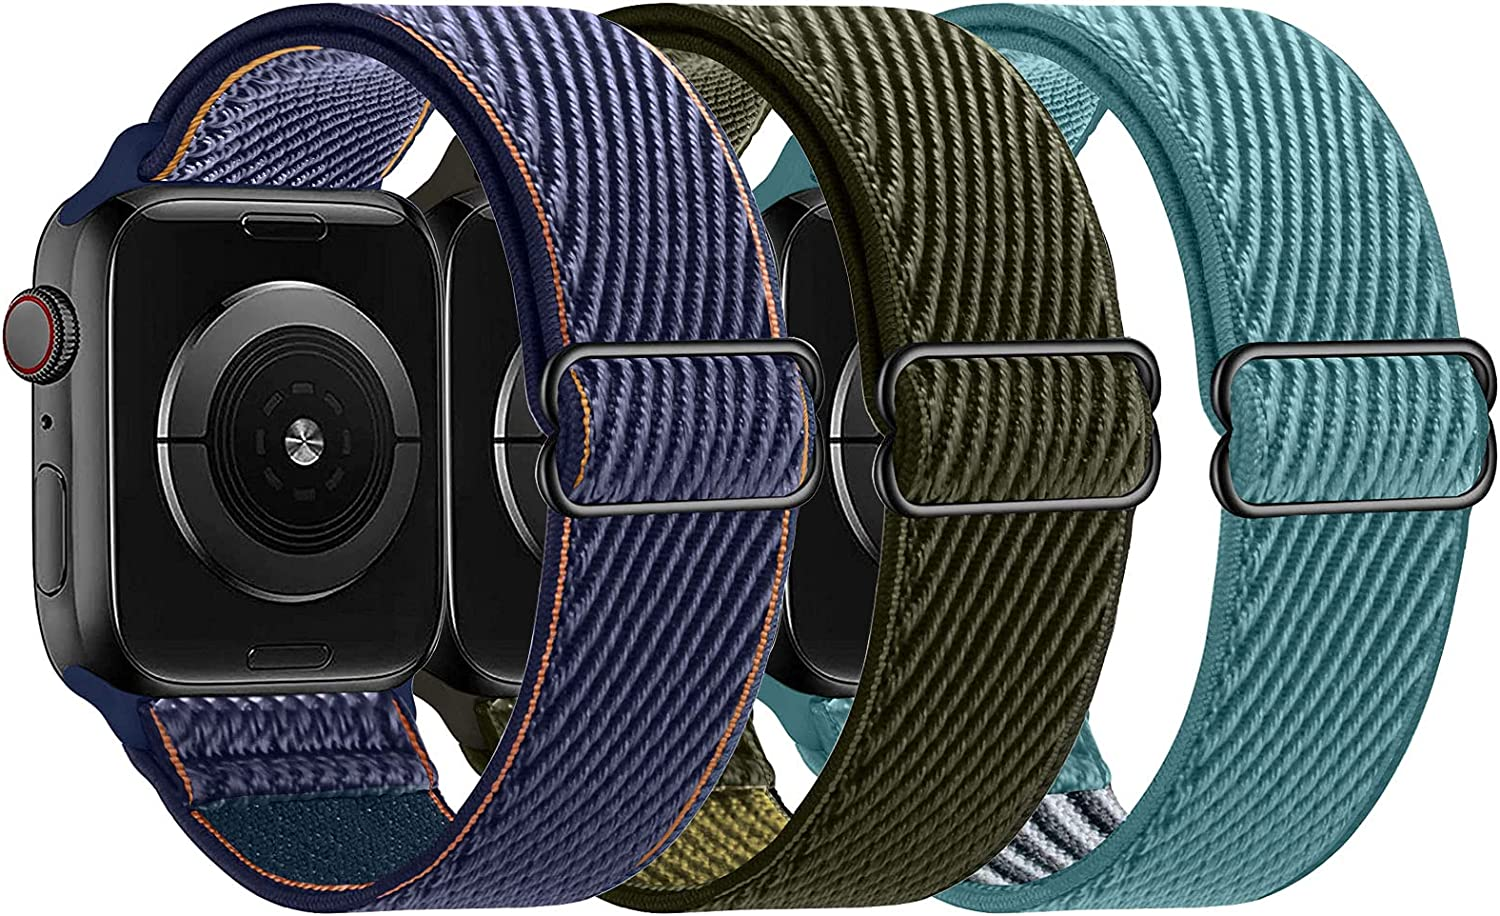 LANGXIAN 3 Pack Nylon Elastic Strap Compatible with Apple Watch Bands, Solo Loop Adjustable Stretch Braided Wristband for iWatch Series 6/5/4/3/2/1/SE, 42mm 44mm (Deep Navy/Army-Green/Celestial-Teal)